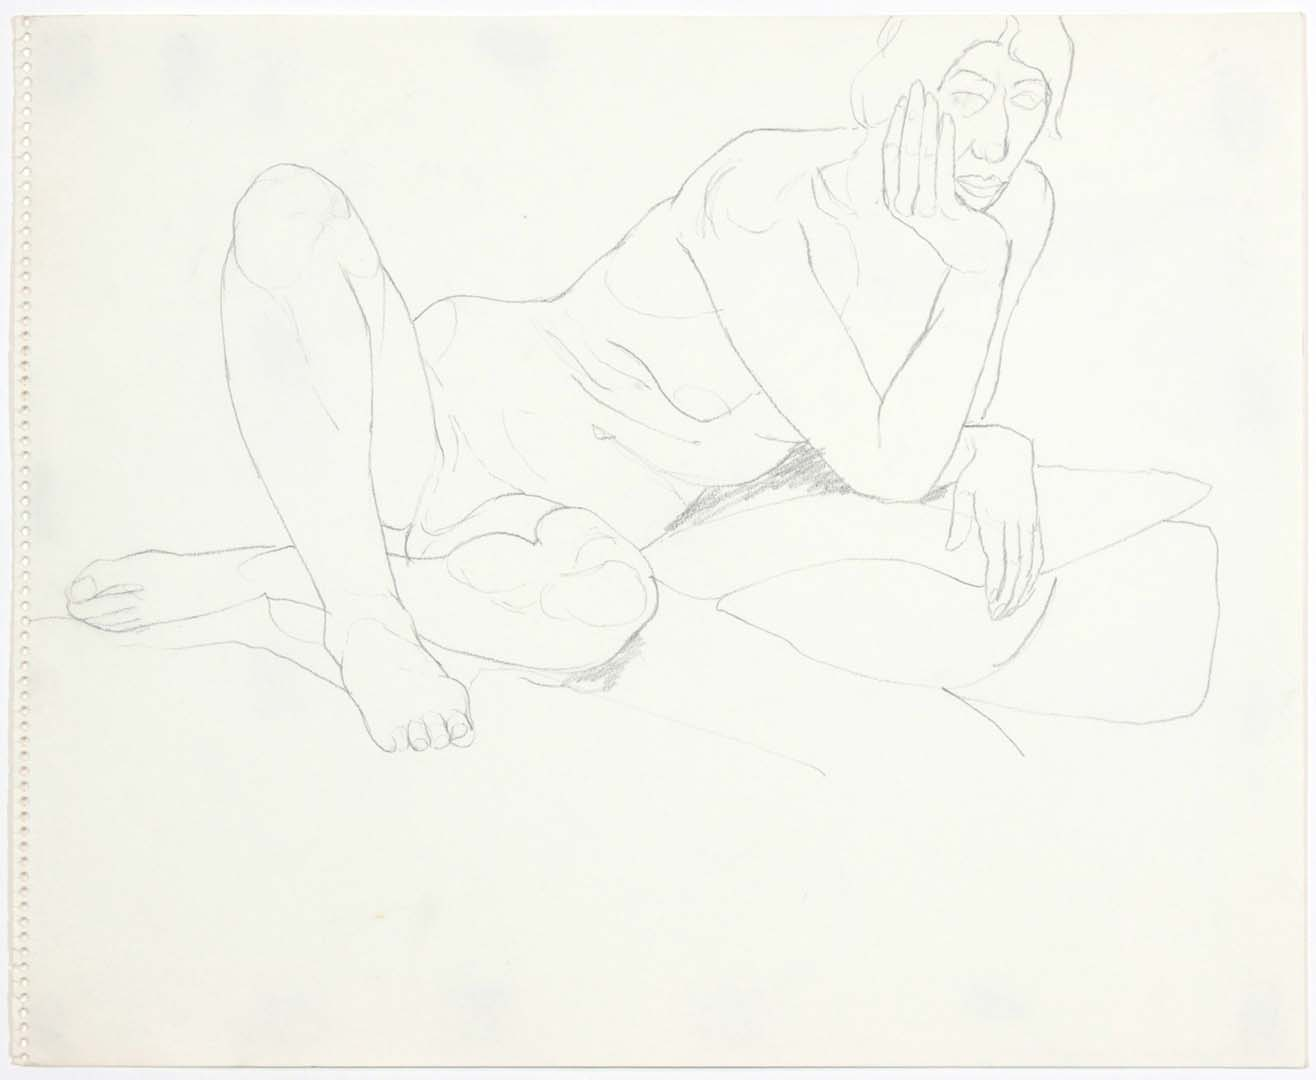 1969 Leaning Female Model with Legs Crossed Pencil on Paper 14 x 17